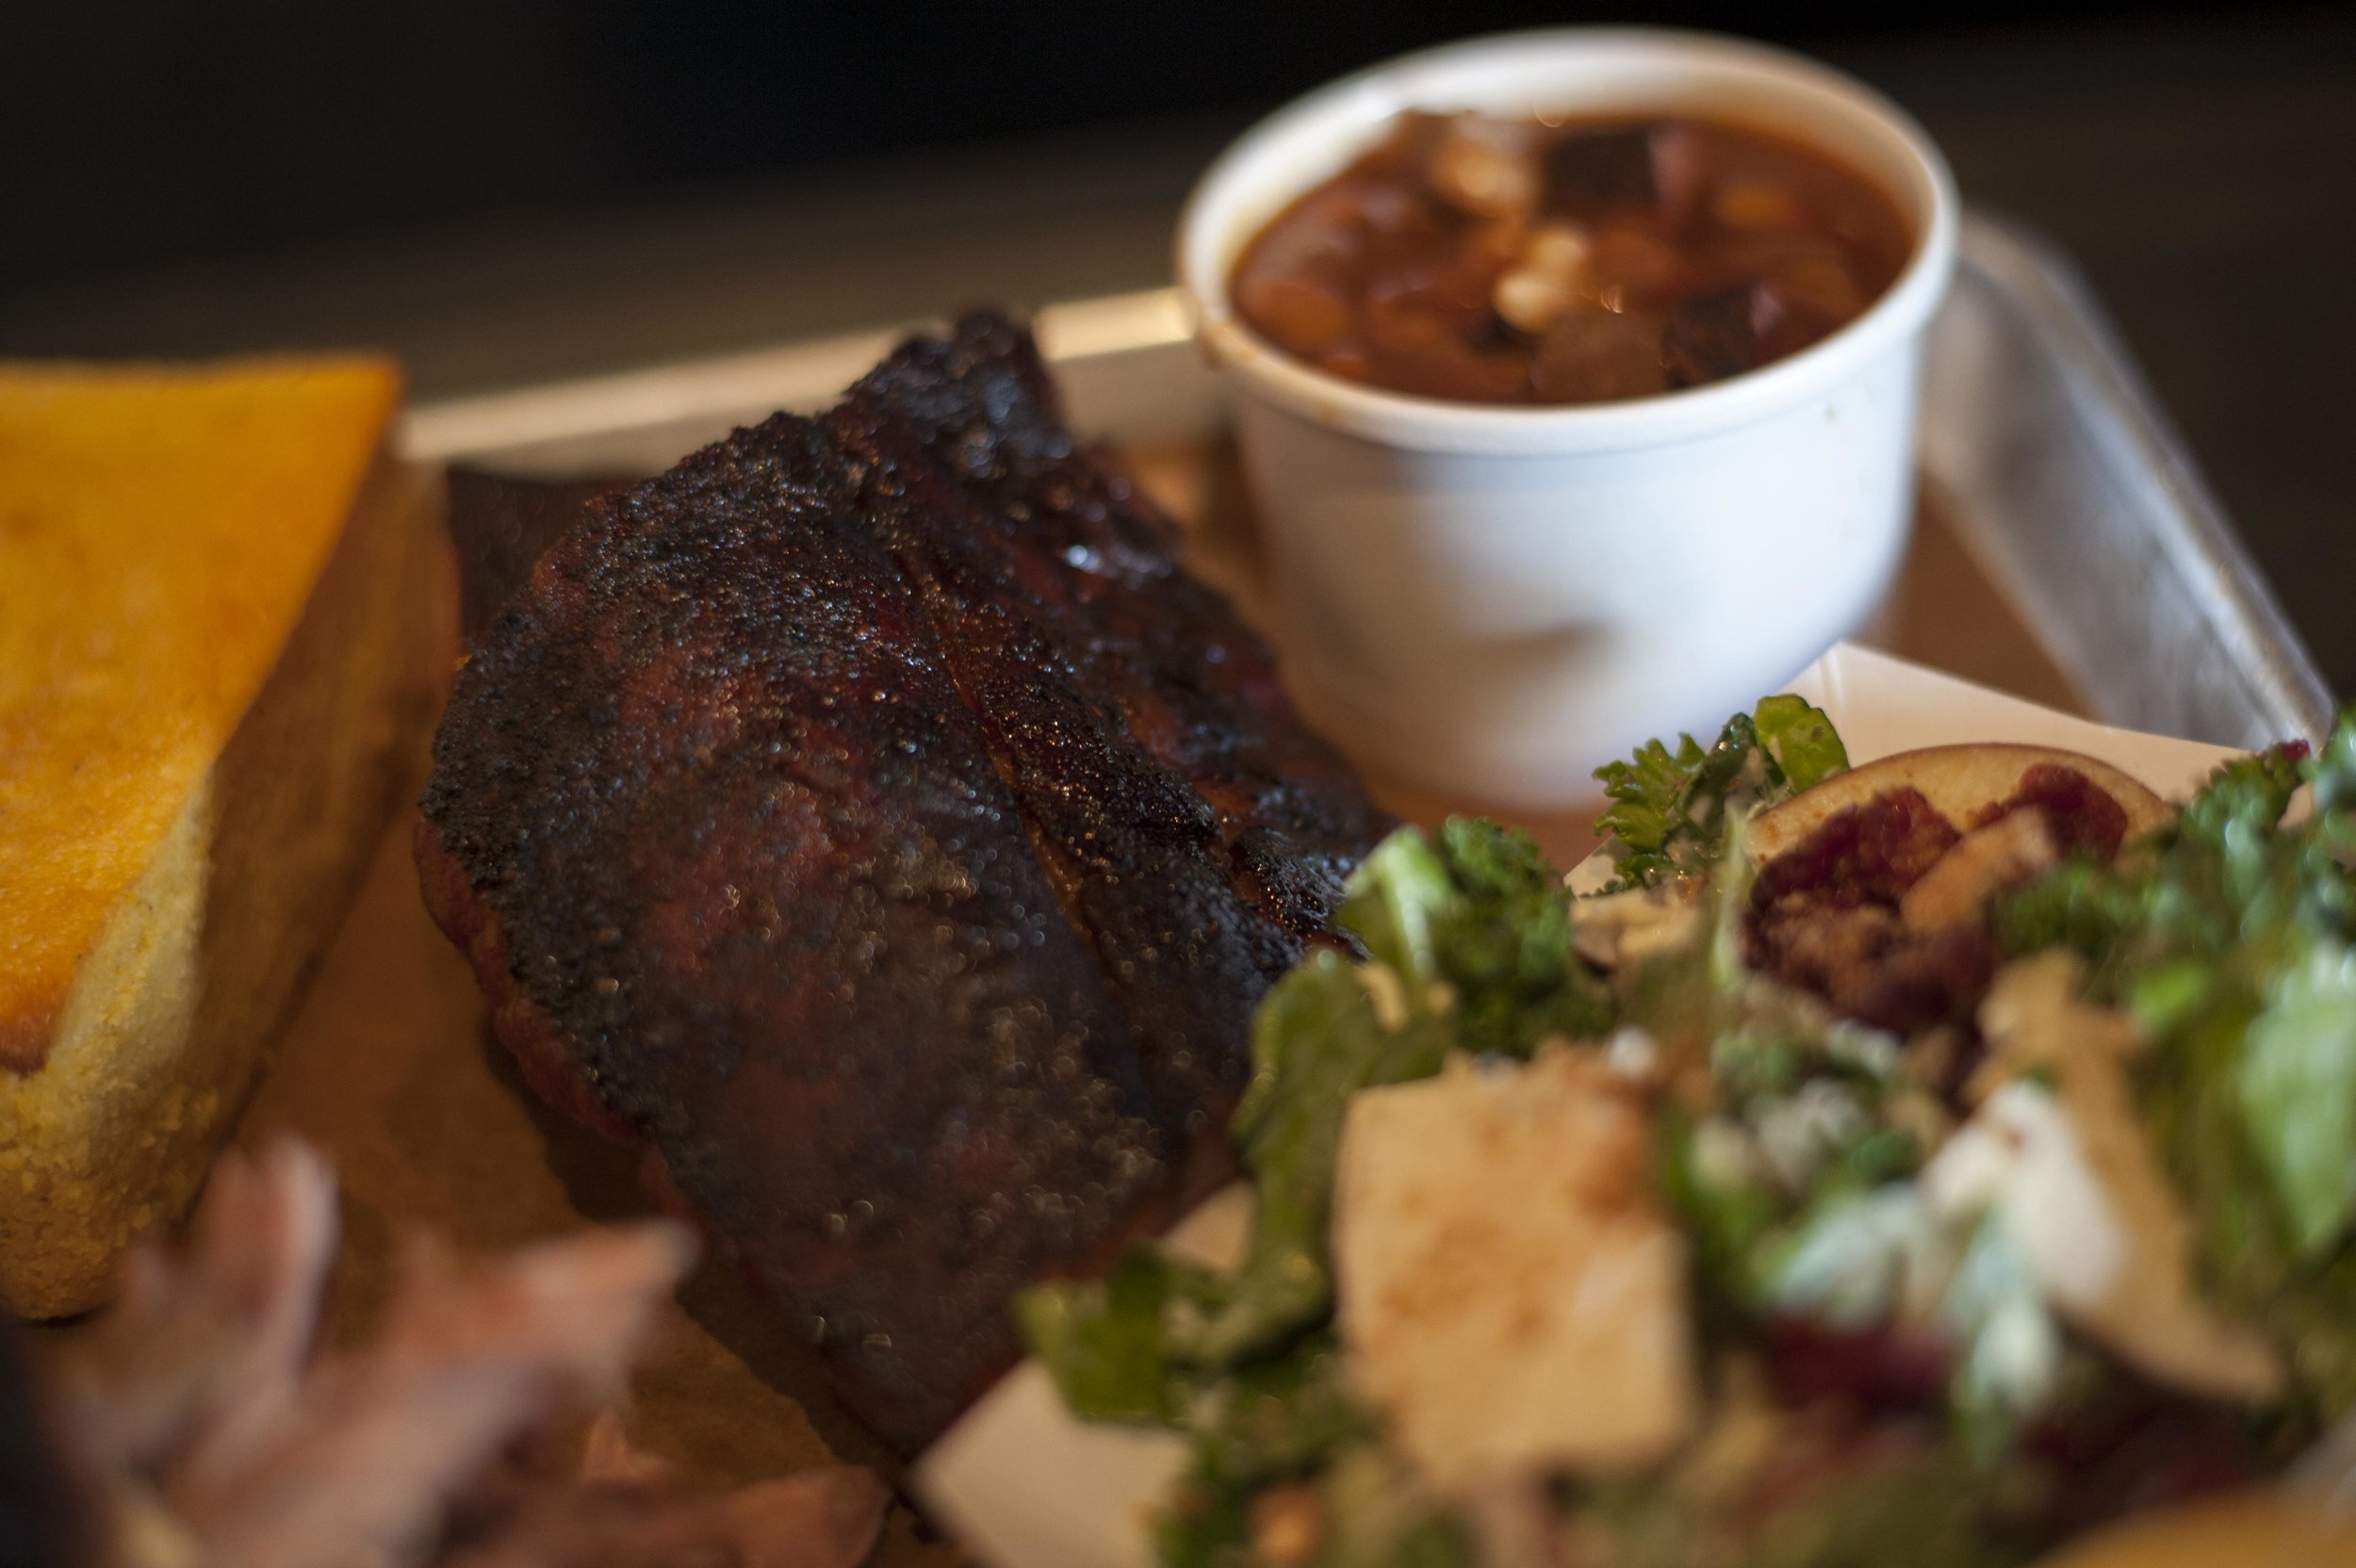 Long Islander News photos/David Weber  The Baby Back Ribs at Old Fields BBQ fall off the bone with just a gentle bite, and have a great, smoky flavor.